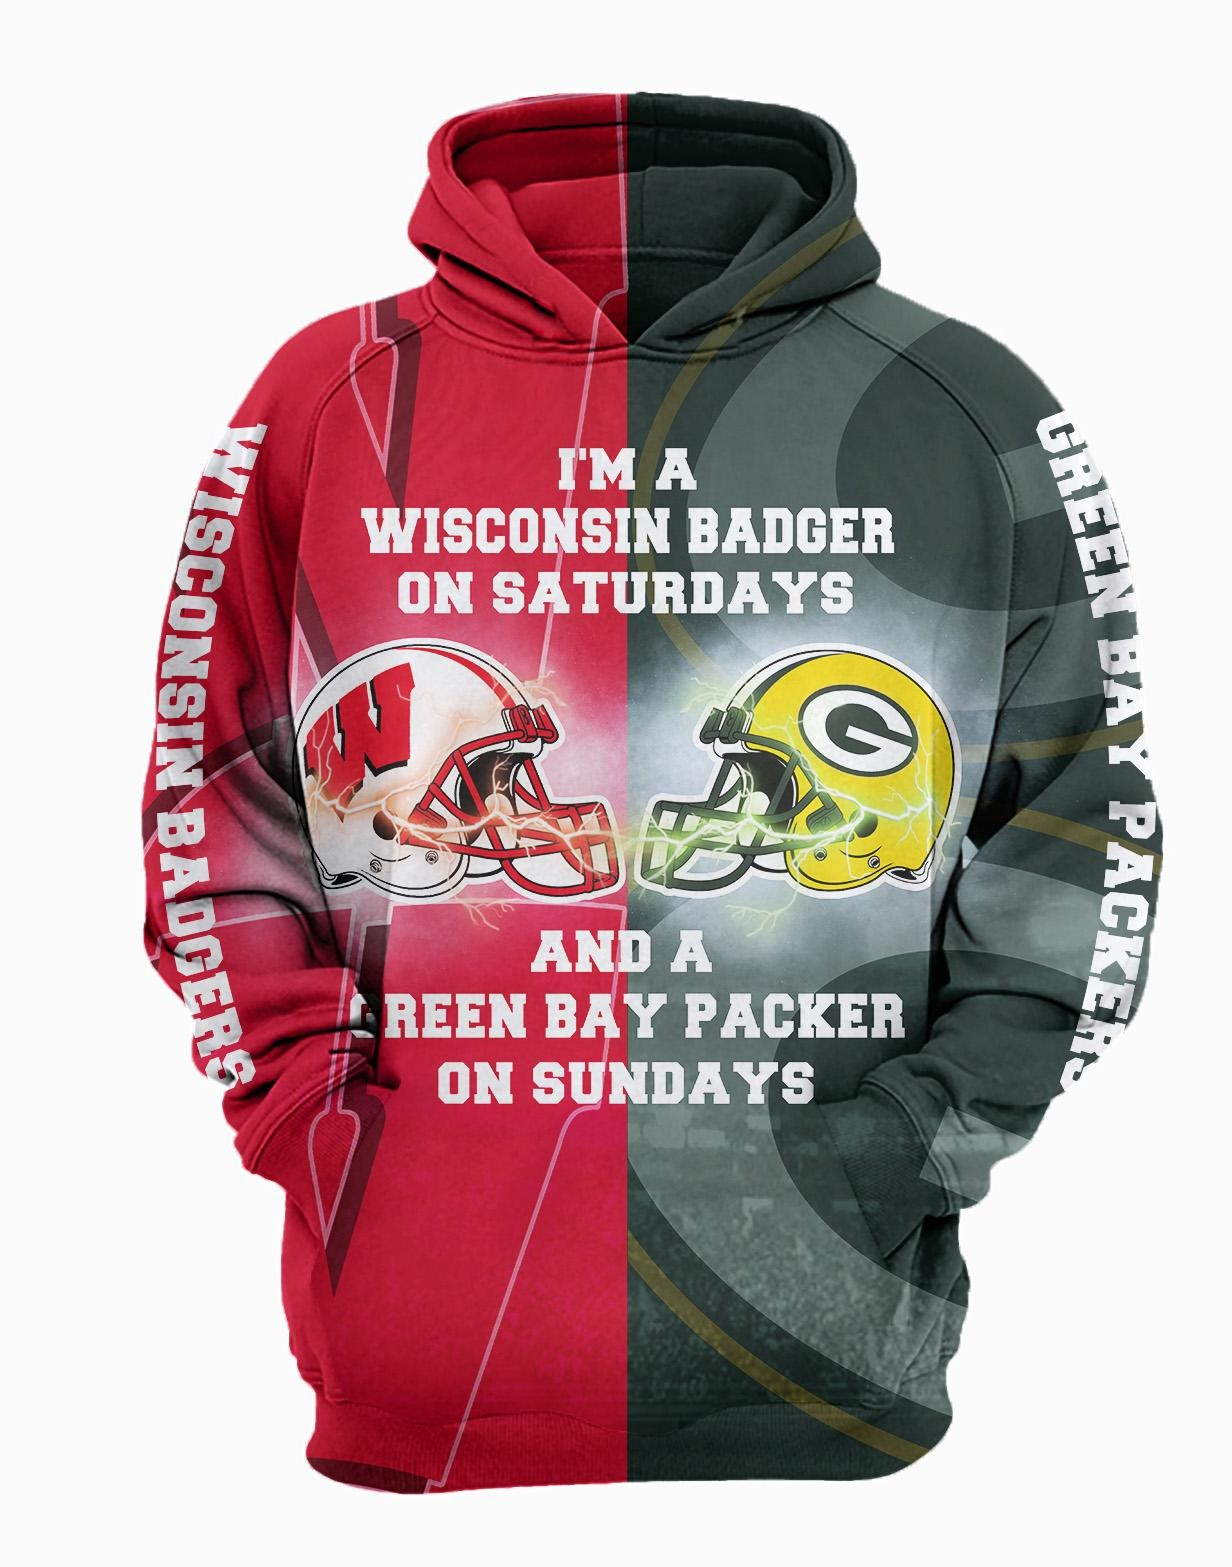 Wisconsin Badger on Saturdays and Green Bay Packers on Sundays 3d hoodies